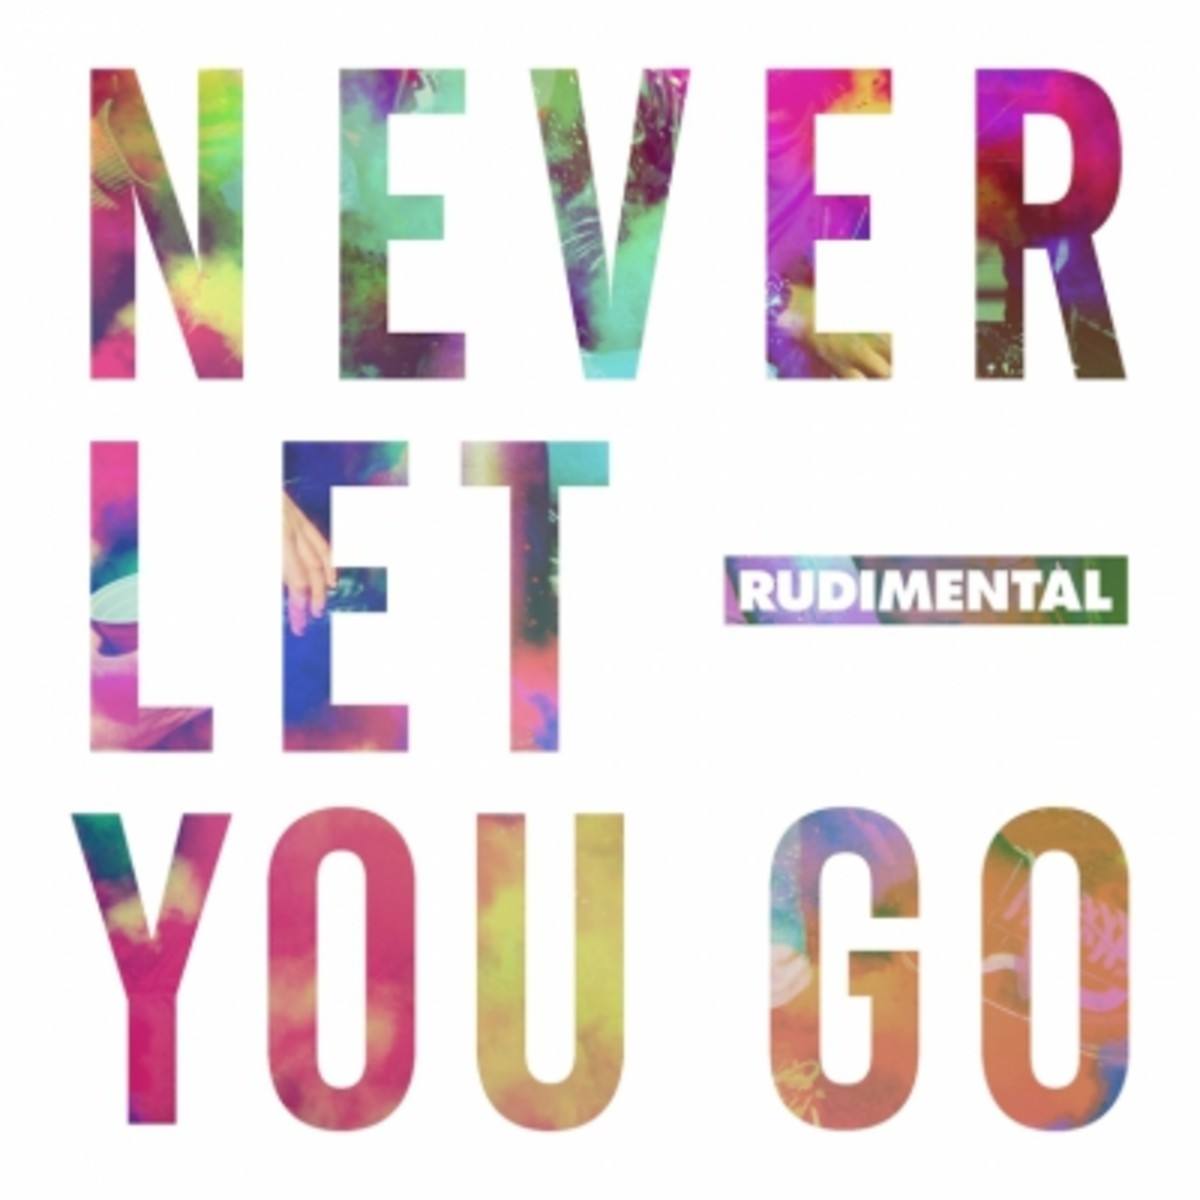 rudimental-never-let-you-go.jpg